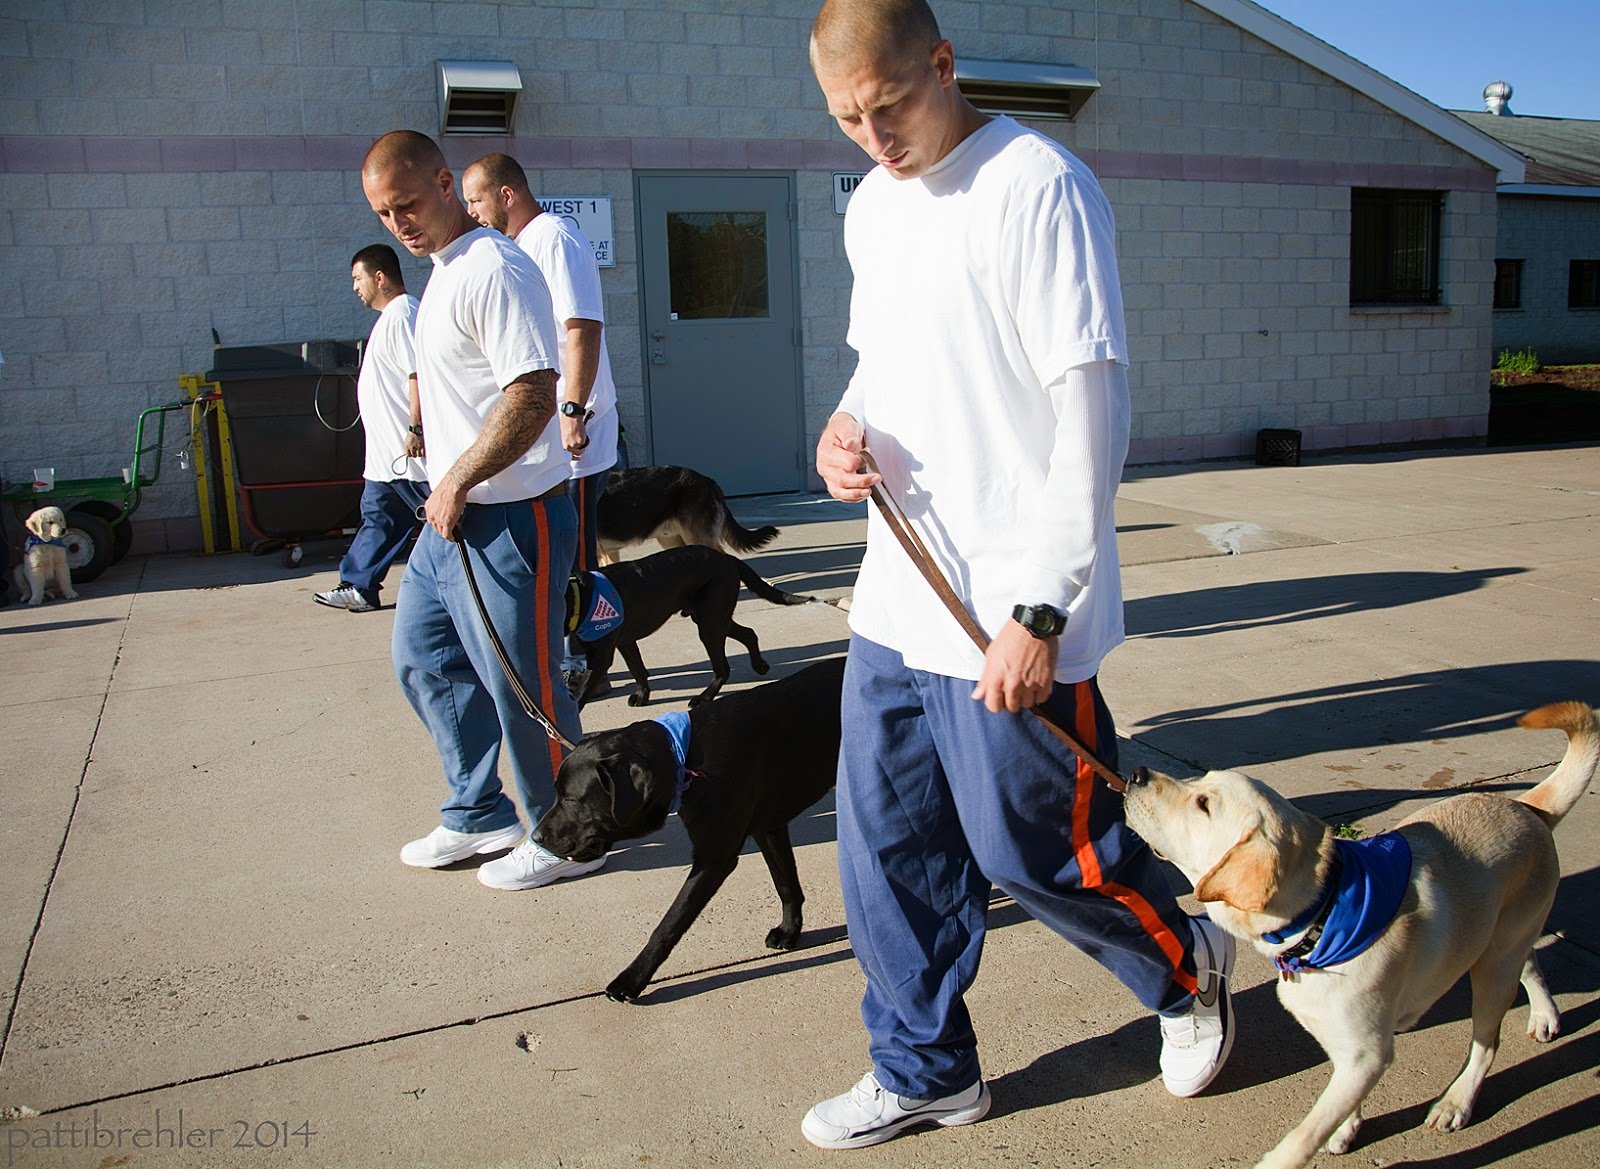 A line of four men are walking from right to left with puppies at their left side. All men are wearing the blue prison pants with white t-shirts. The man closest to the camera (on the right) is looking down at his yellow lab; the lab is looking up at him. The next two men in line have black labs and the last man has a german shepherd. The men are walking on pavement in bright sunshine in front of a white brick building. There is a dumpster in the background near the building on the left.